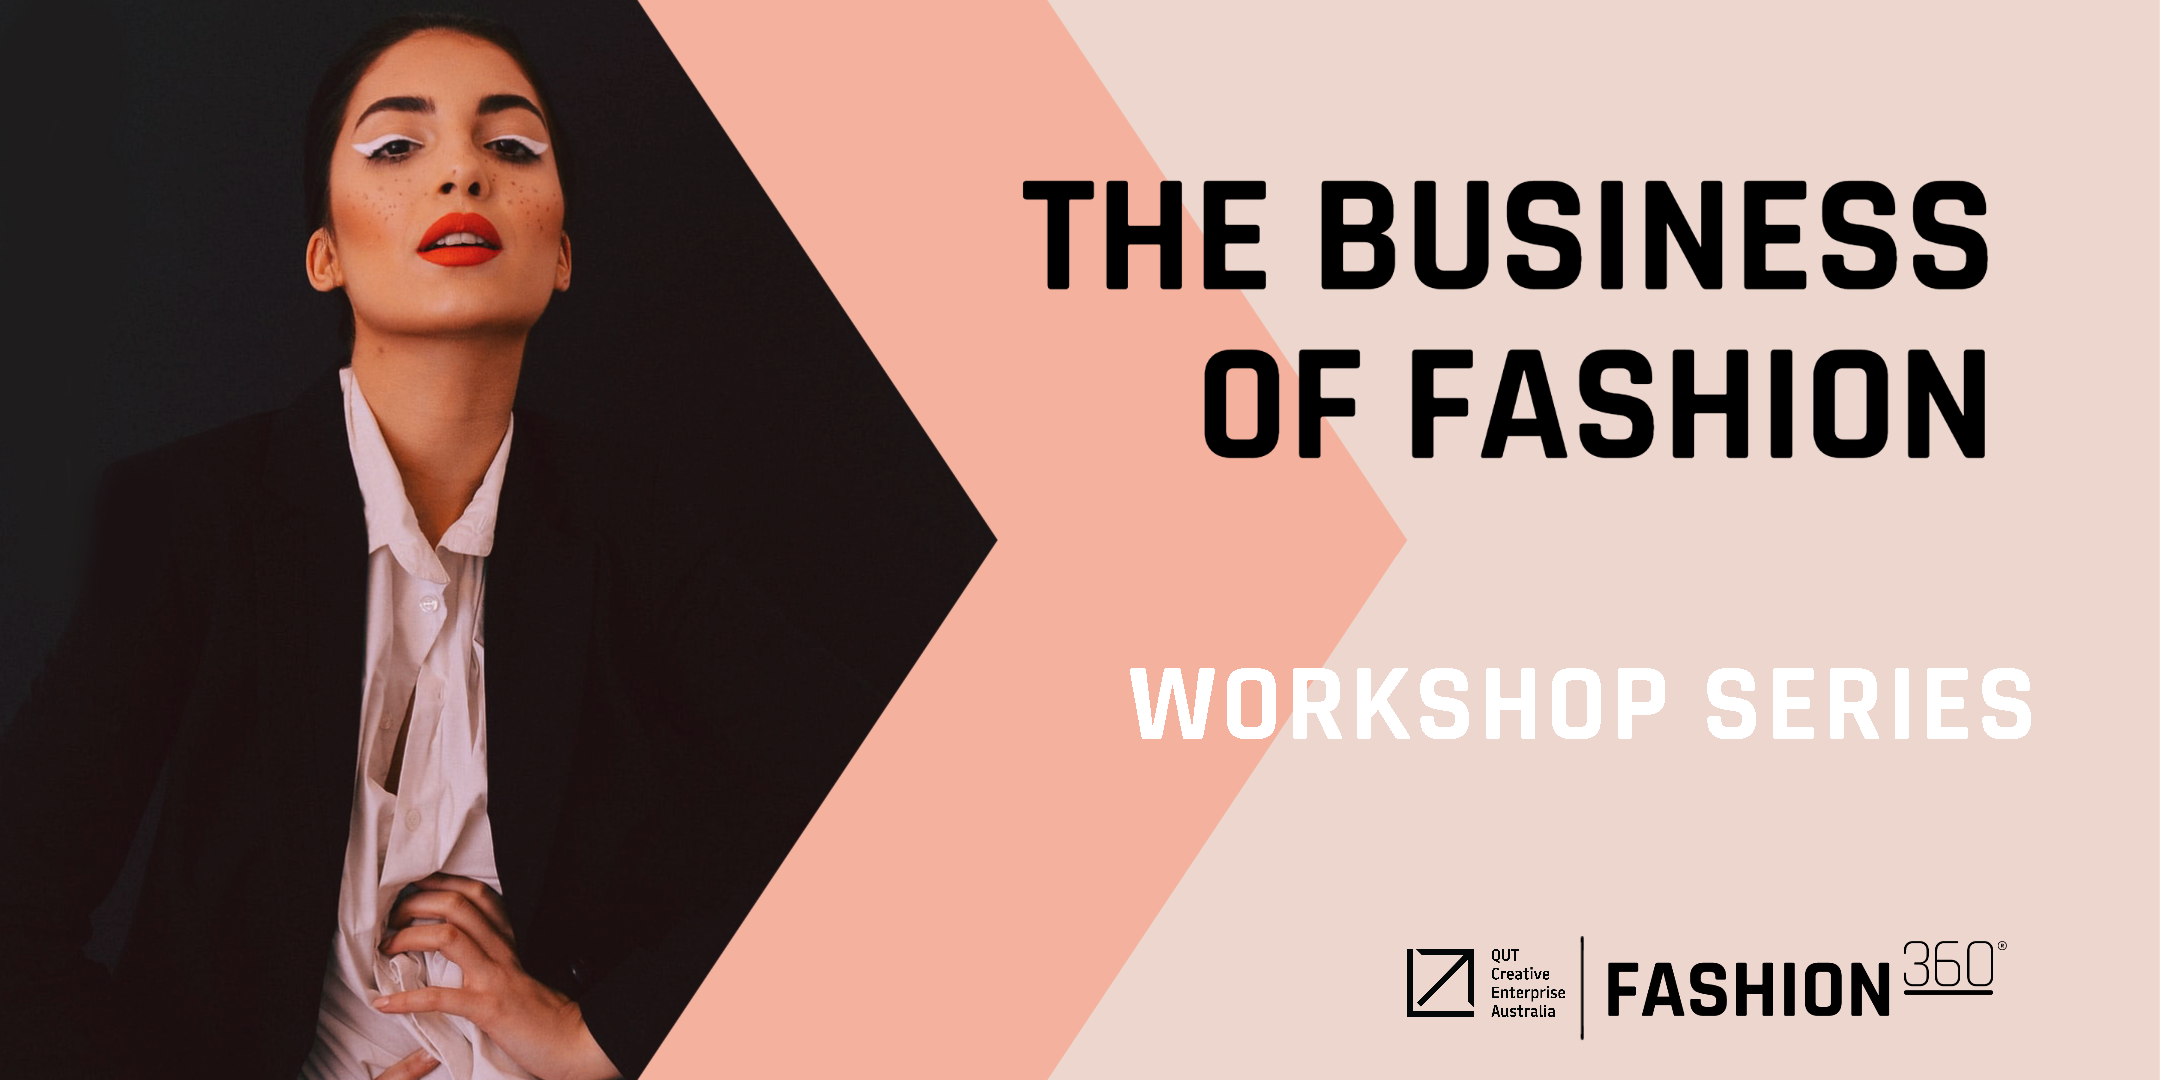 The Business of Fashion: Adapting to change and overcoming challenges